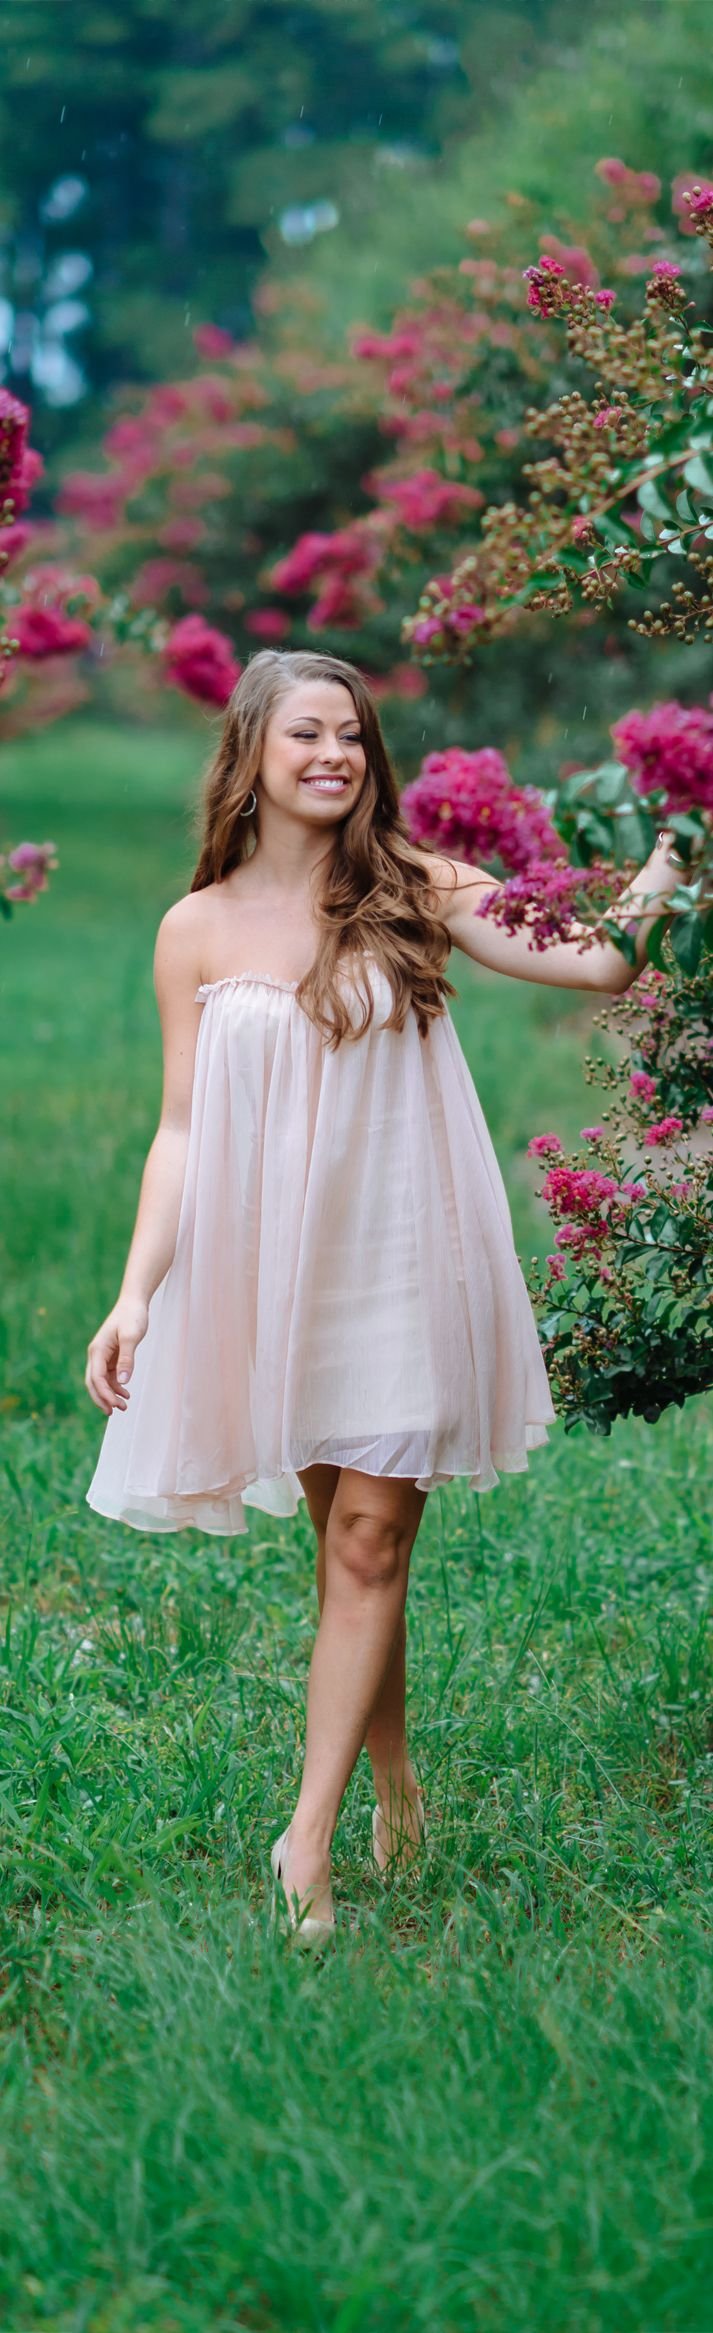 Senior picture ideas for girls. Secret Garden location.  www.pashabelman.com